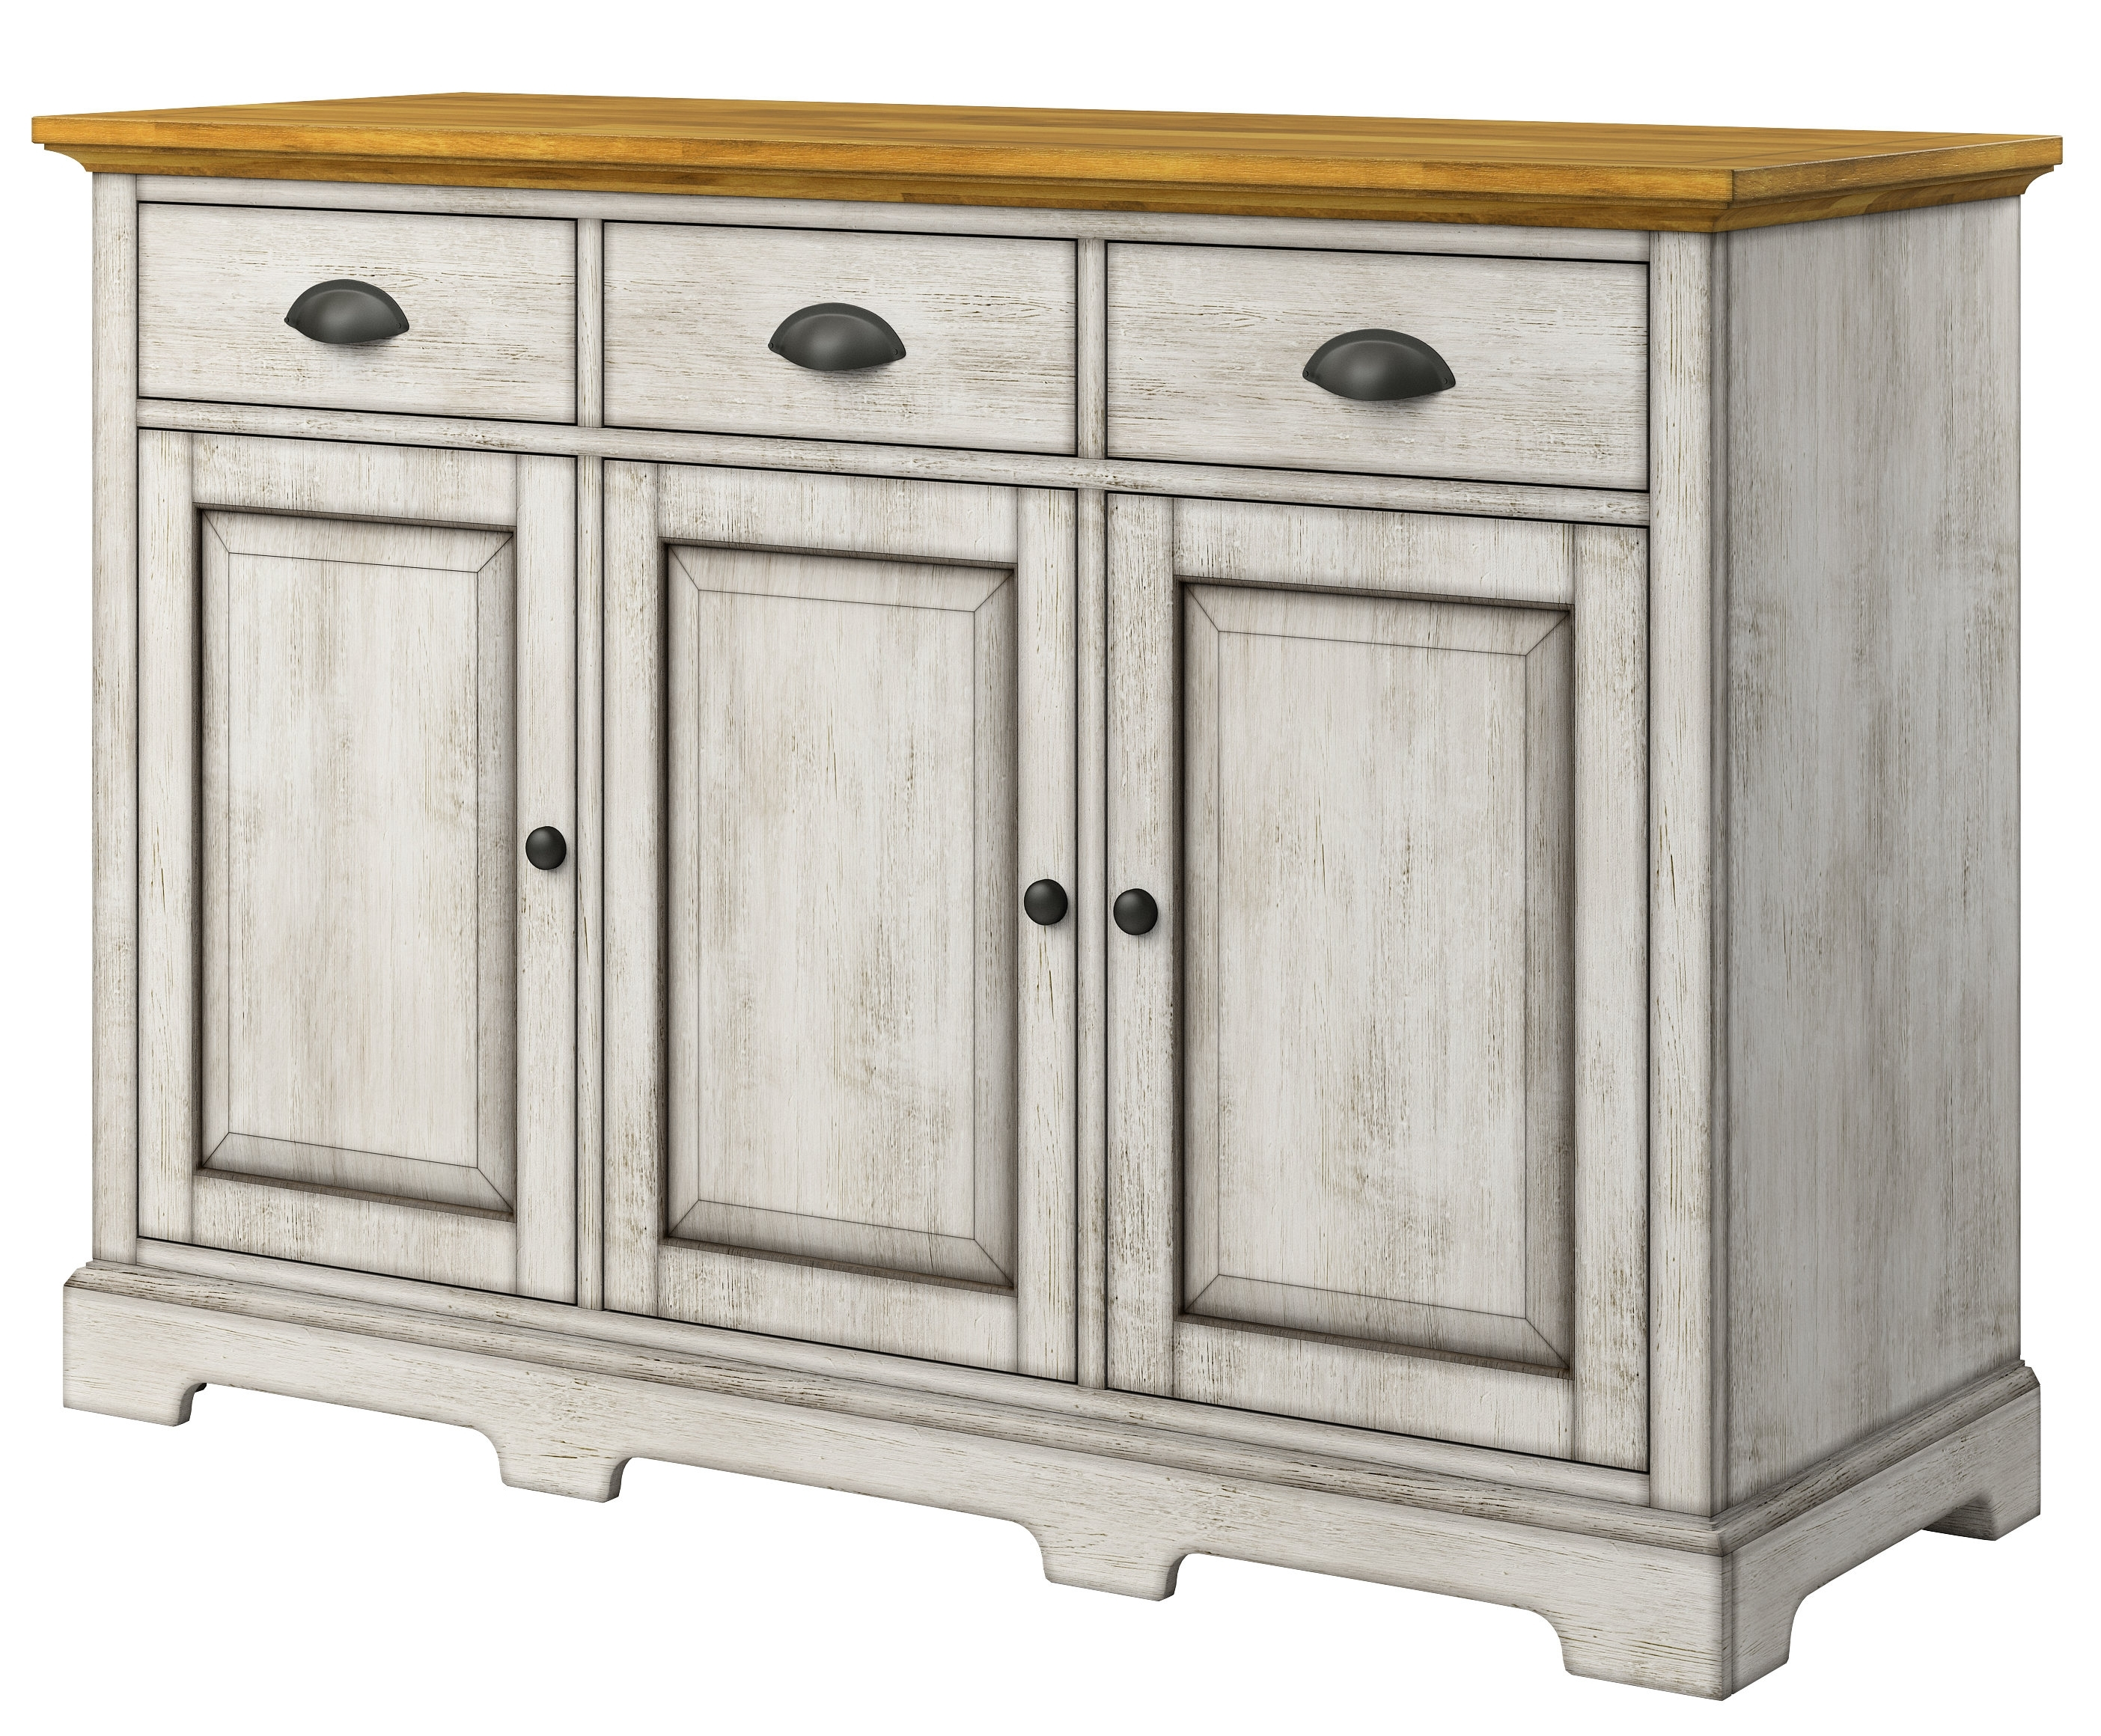 White Sideboards & Buffets You'll Love | Wayfair within Solar Refinement Sideboards (Image 29 of 30)